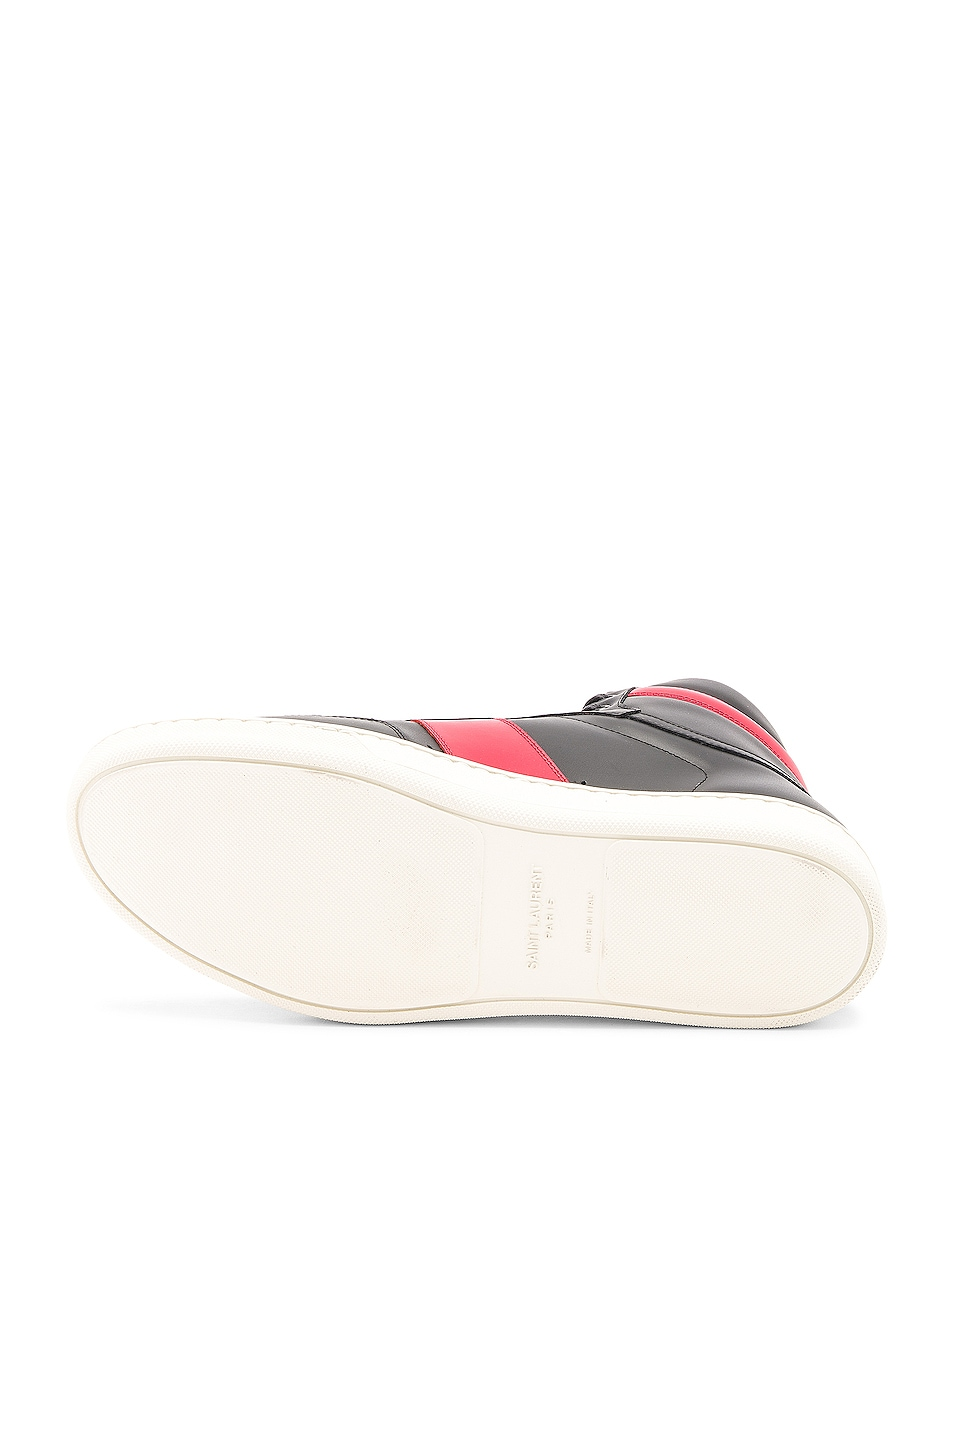 Image 6 of Saint Laurent Signature Court Classic SL/10H Leather High Top Sneakers in Black & Red